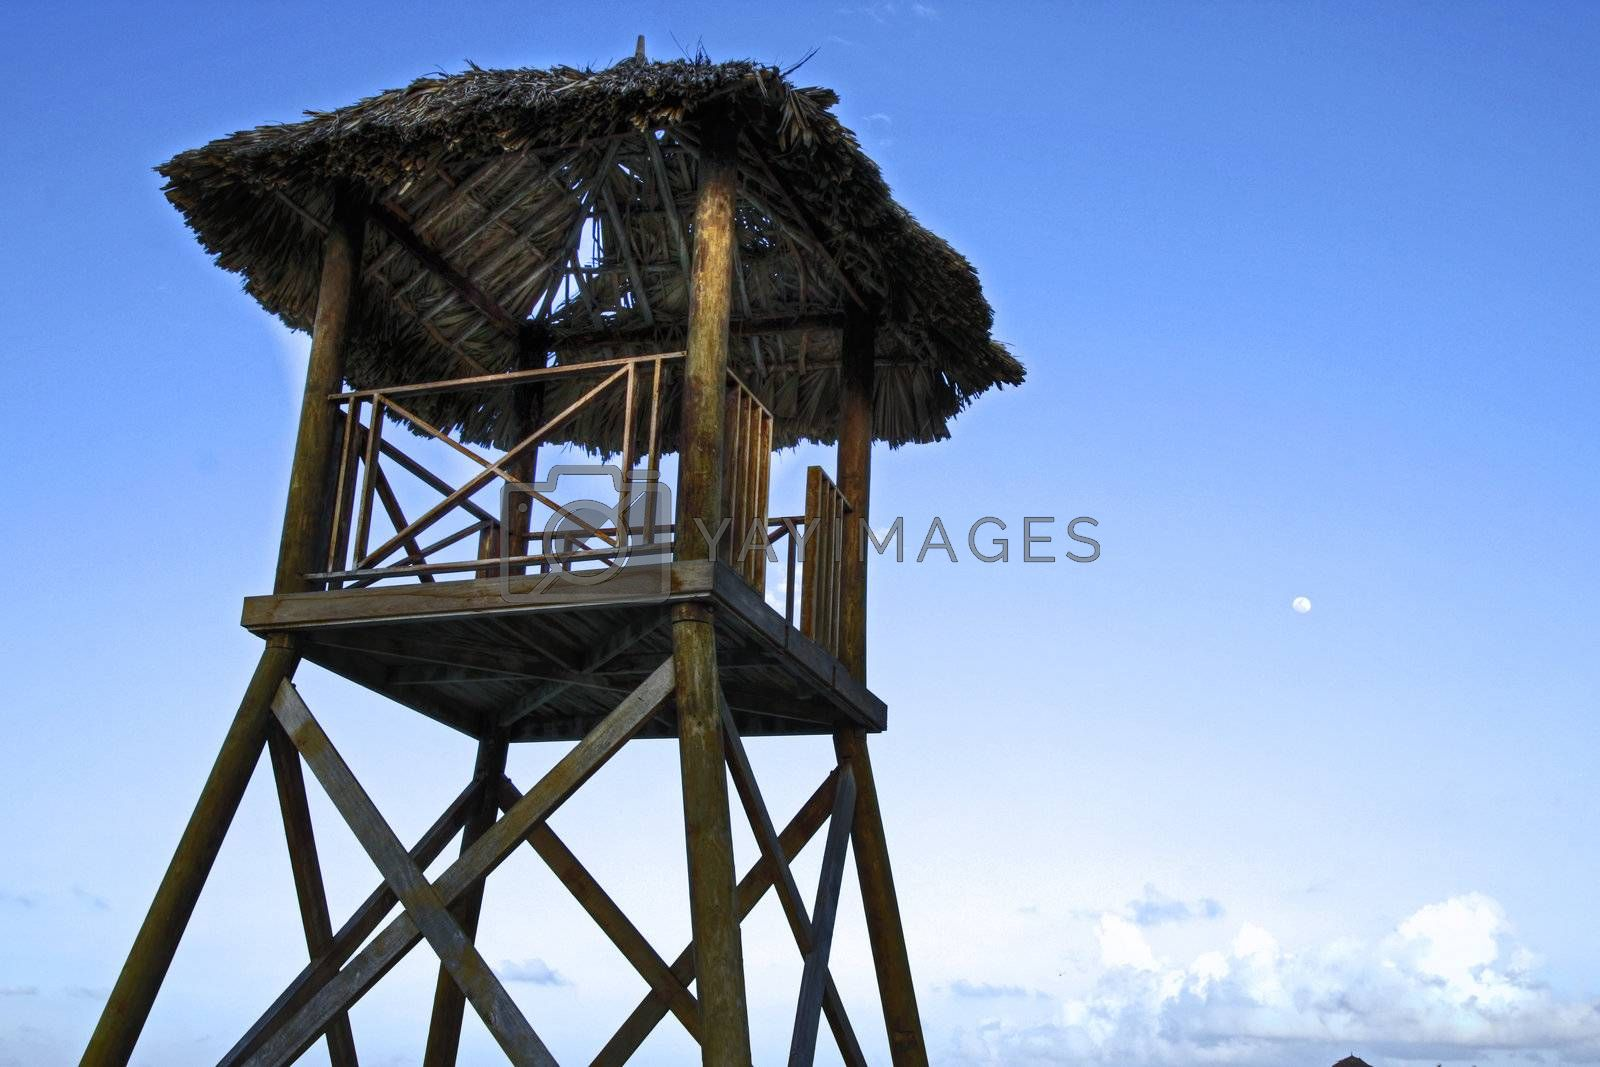 Tropical watchtower overlooking a beach in silhouette